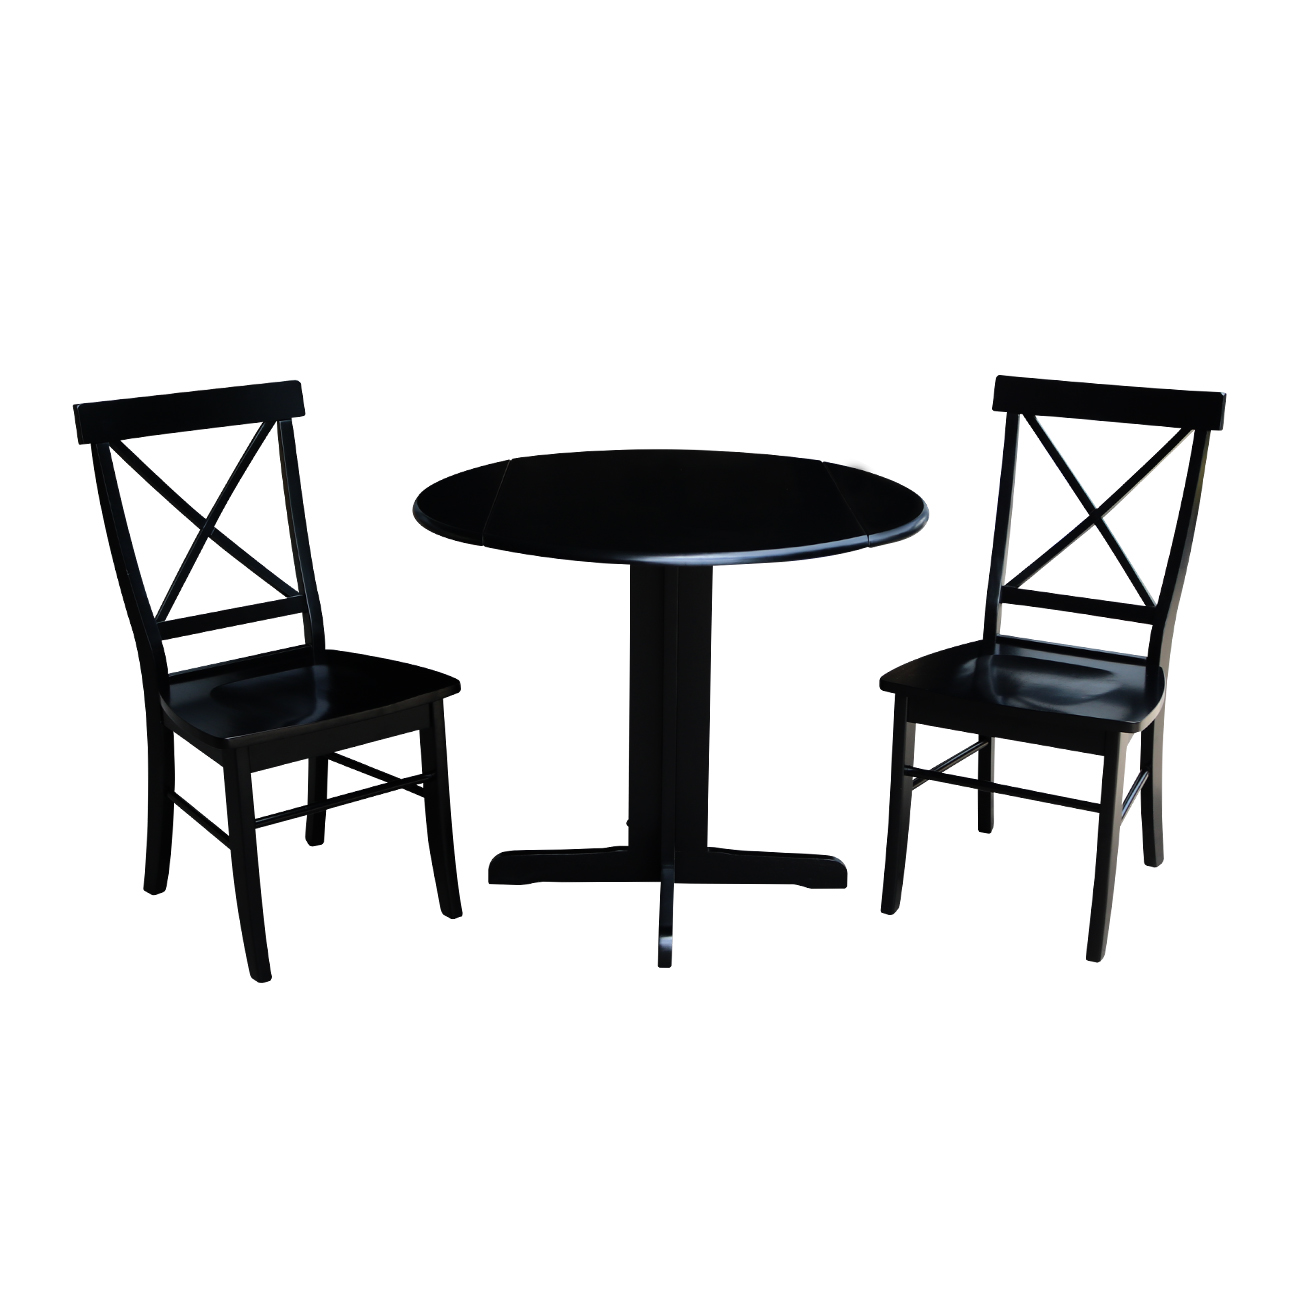 36 inch Dual Drop Leaf Dining Table with Two X-back Chairs in Black